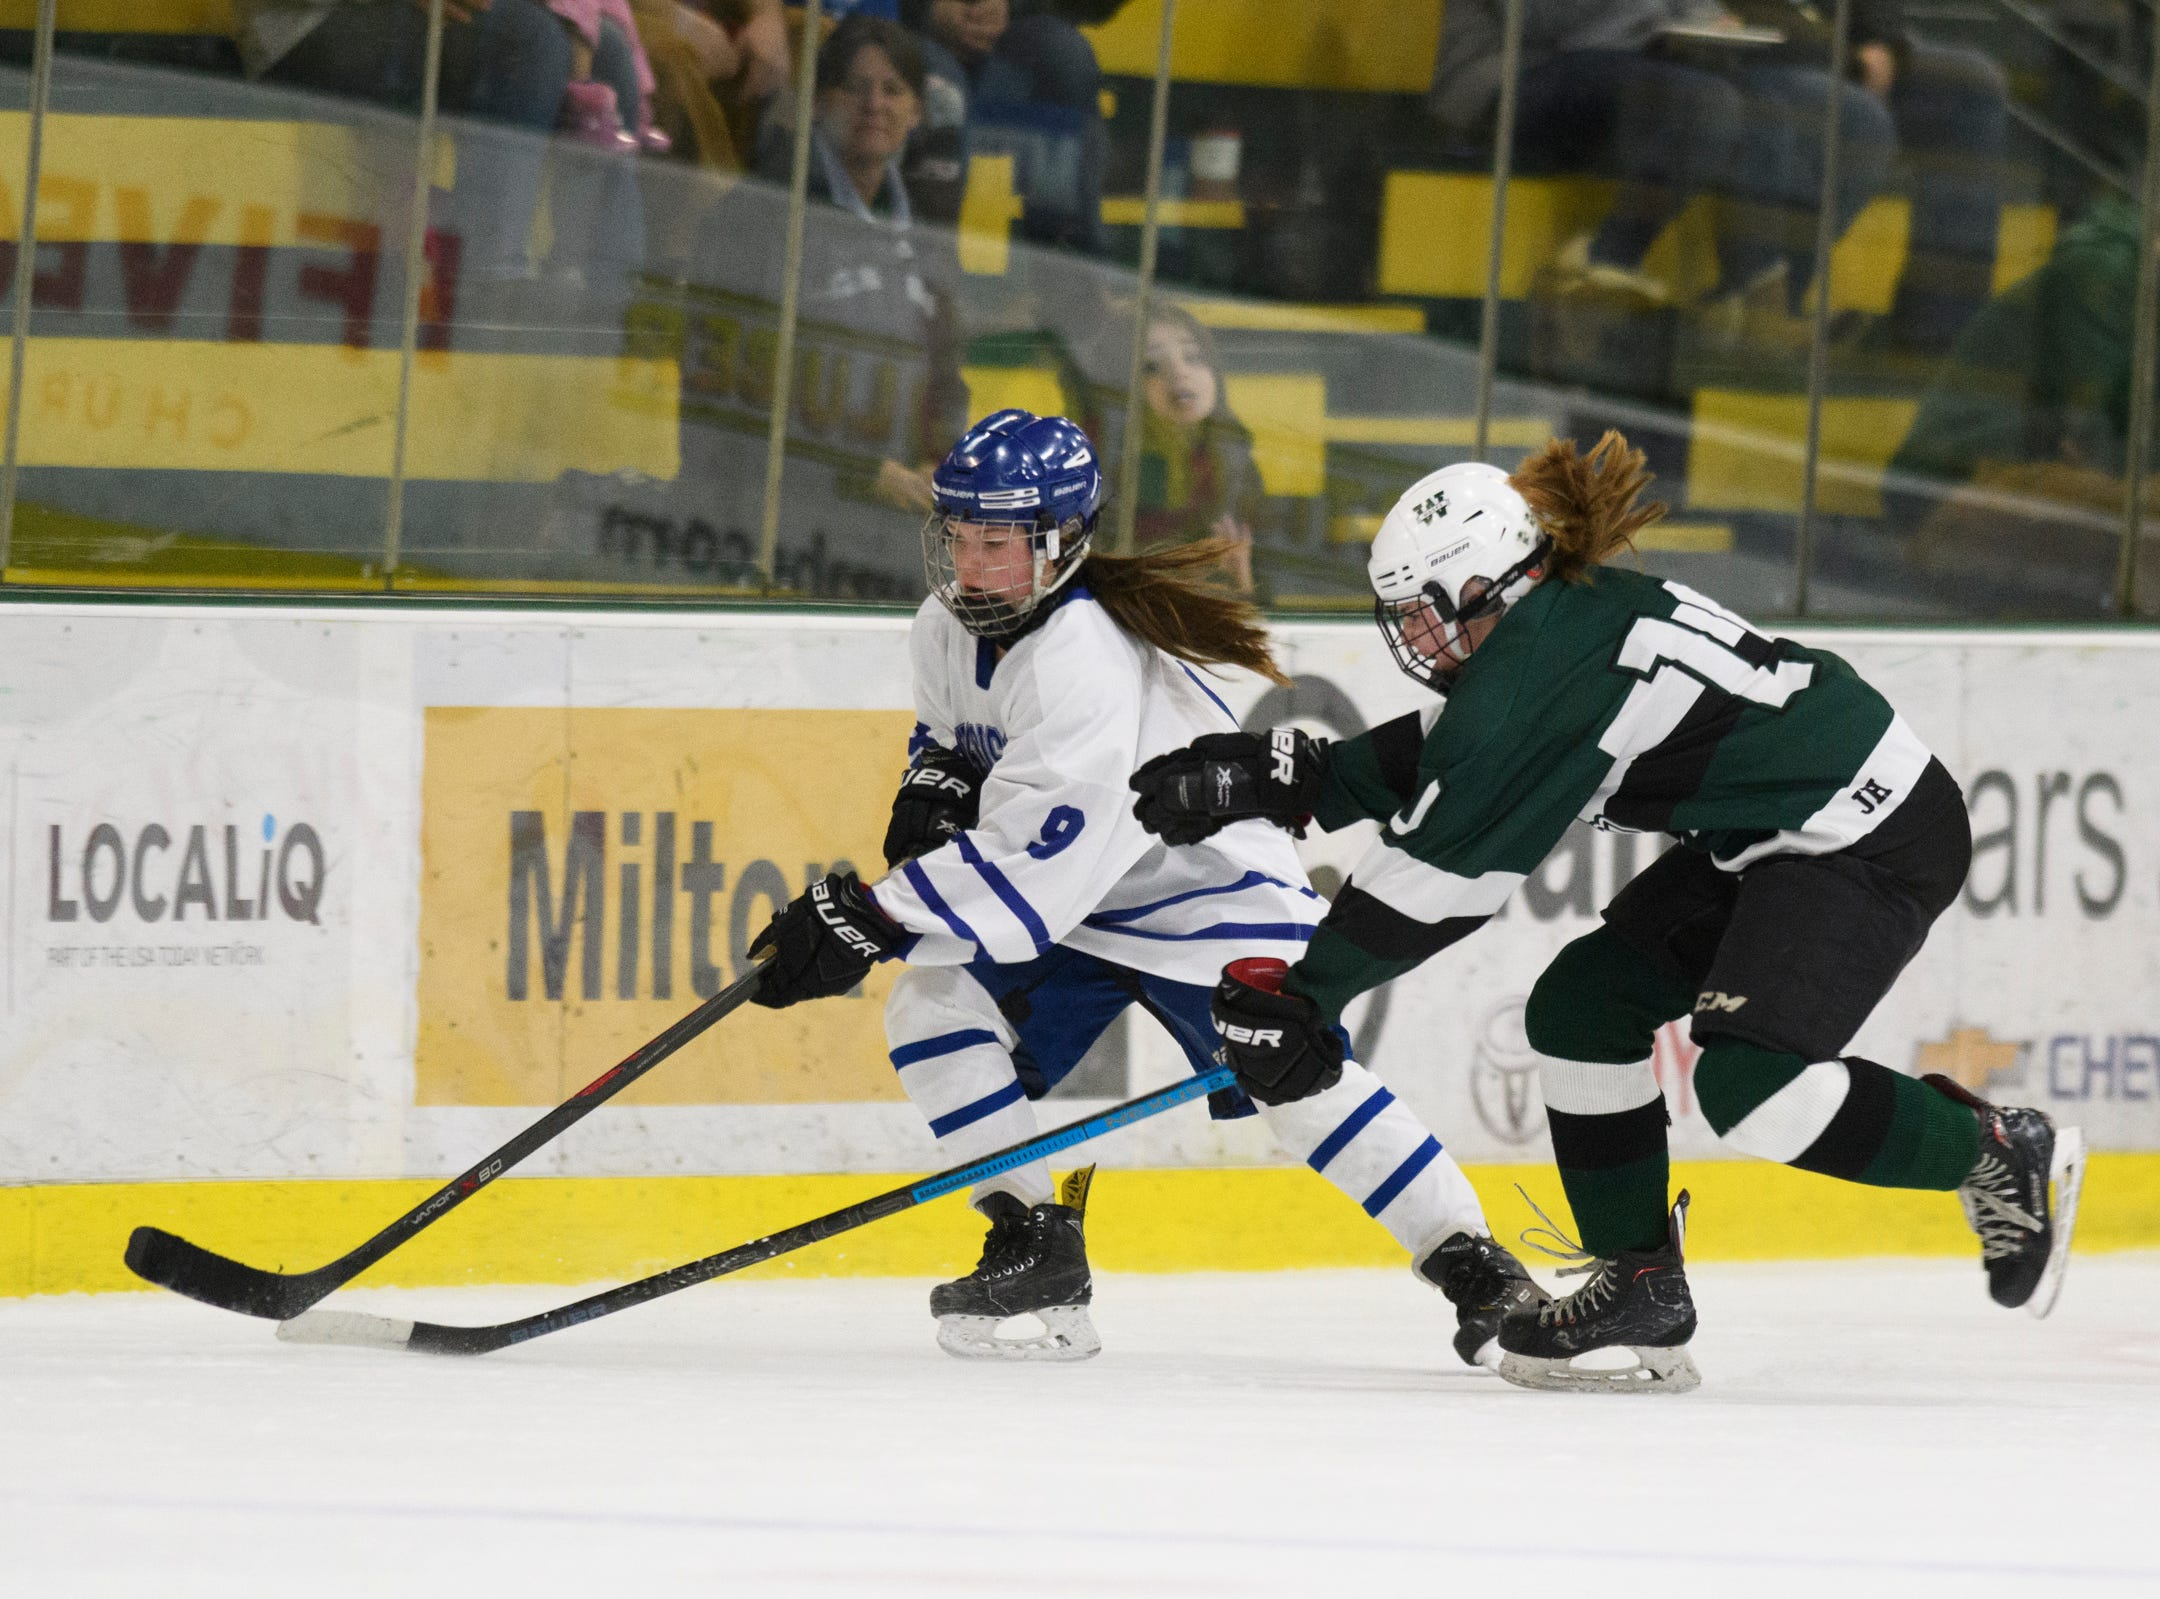 Woodstock's Allie Cimis (10) and Missisquoi's Abigail Bessette (9) chase down the puck during the DII girls hockey championship game between the Woodstock Wasps and the Missisquoi Thunderbirds at Gutterson Field House on Thursday night March 14, 2019 in Burlington, Vermont.